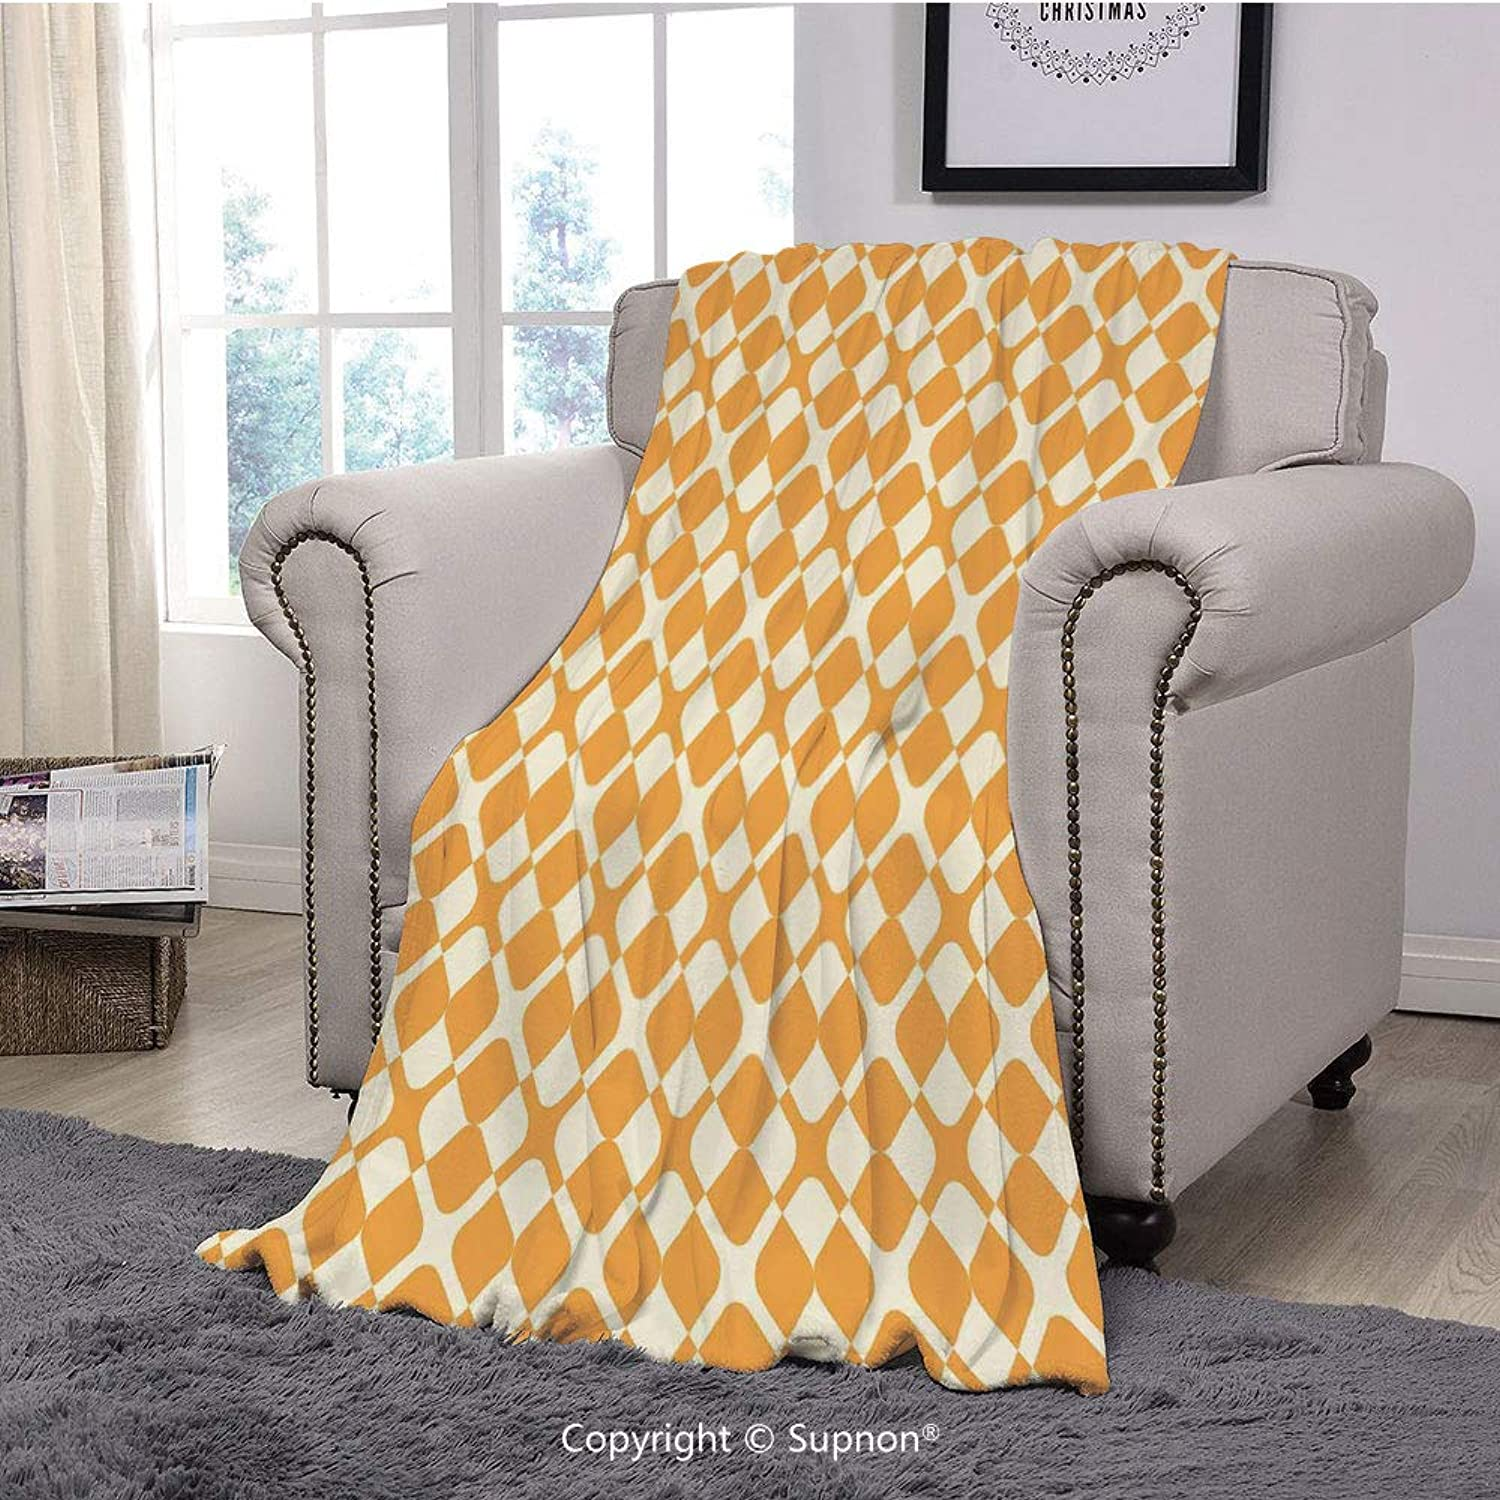 BeeMeng Printing Blanket Coral Plush Super Soft Decorative Throw Blanket,Kids,Abstract Diagonal Checked Tile Pattern with Different Shabby colord Cross Lines,Marigold Cream(59  x 59 )